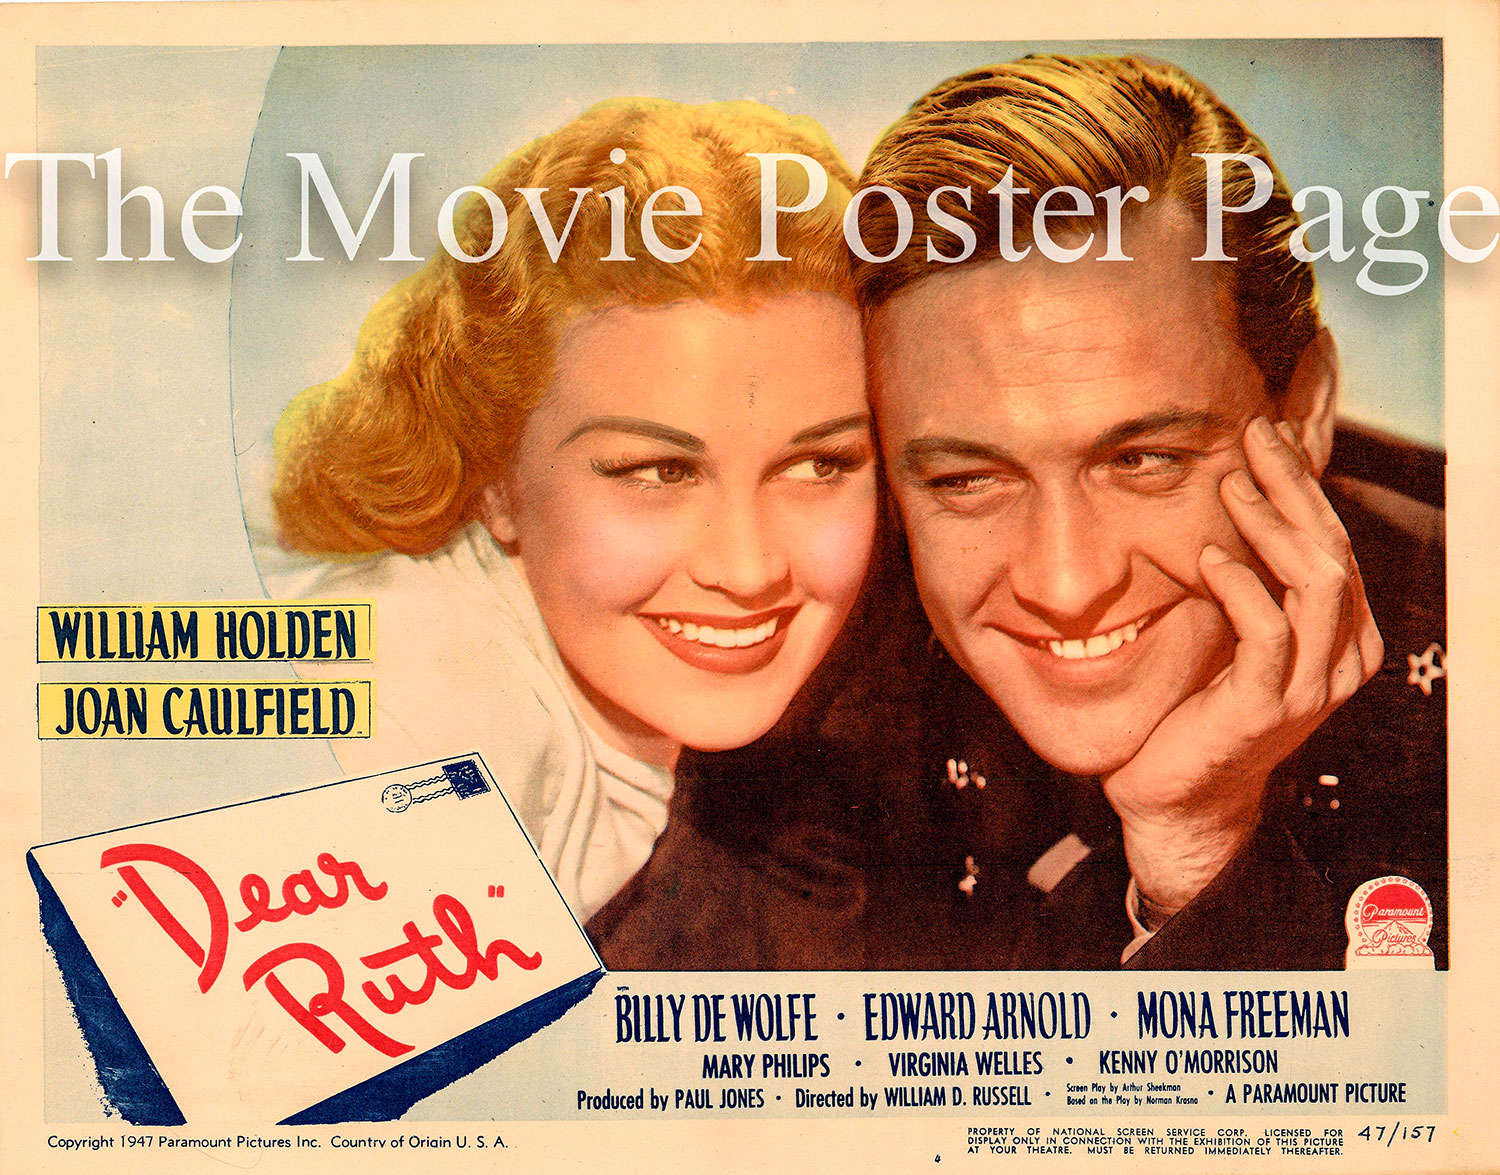 Pictured is a US lobby card for the 1947 William D. Russell film Dear Ruth starring William Holden and Joan Caulfield.